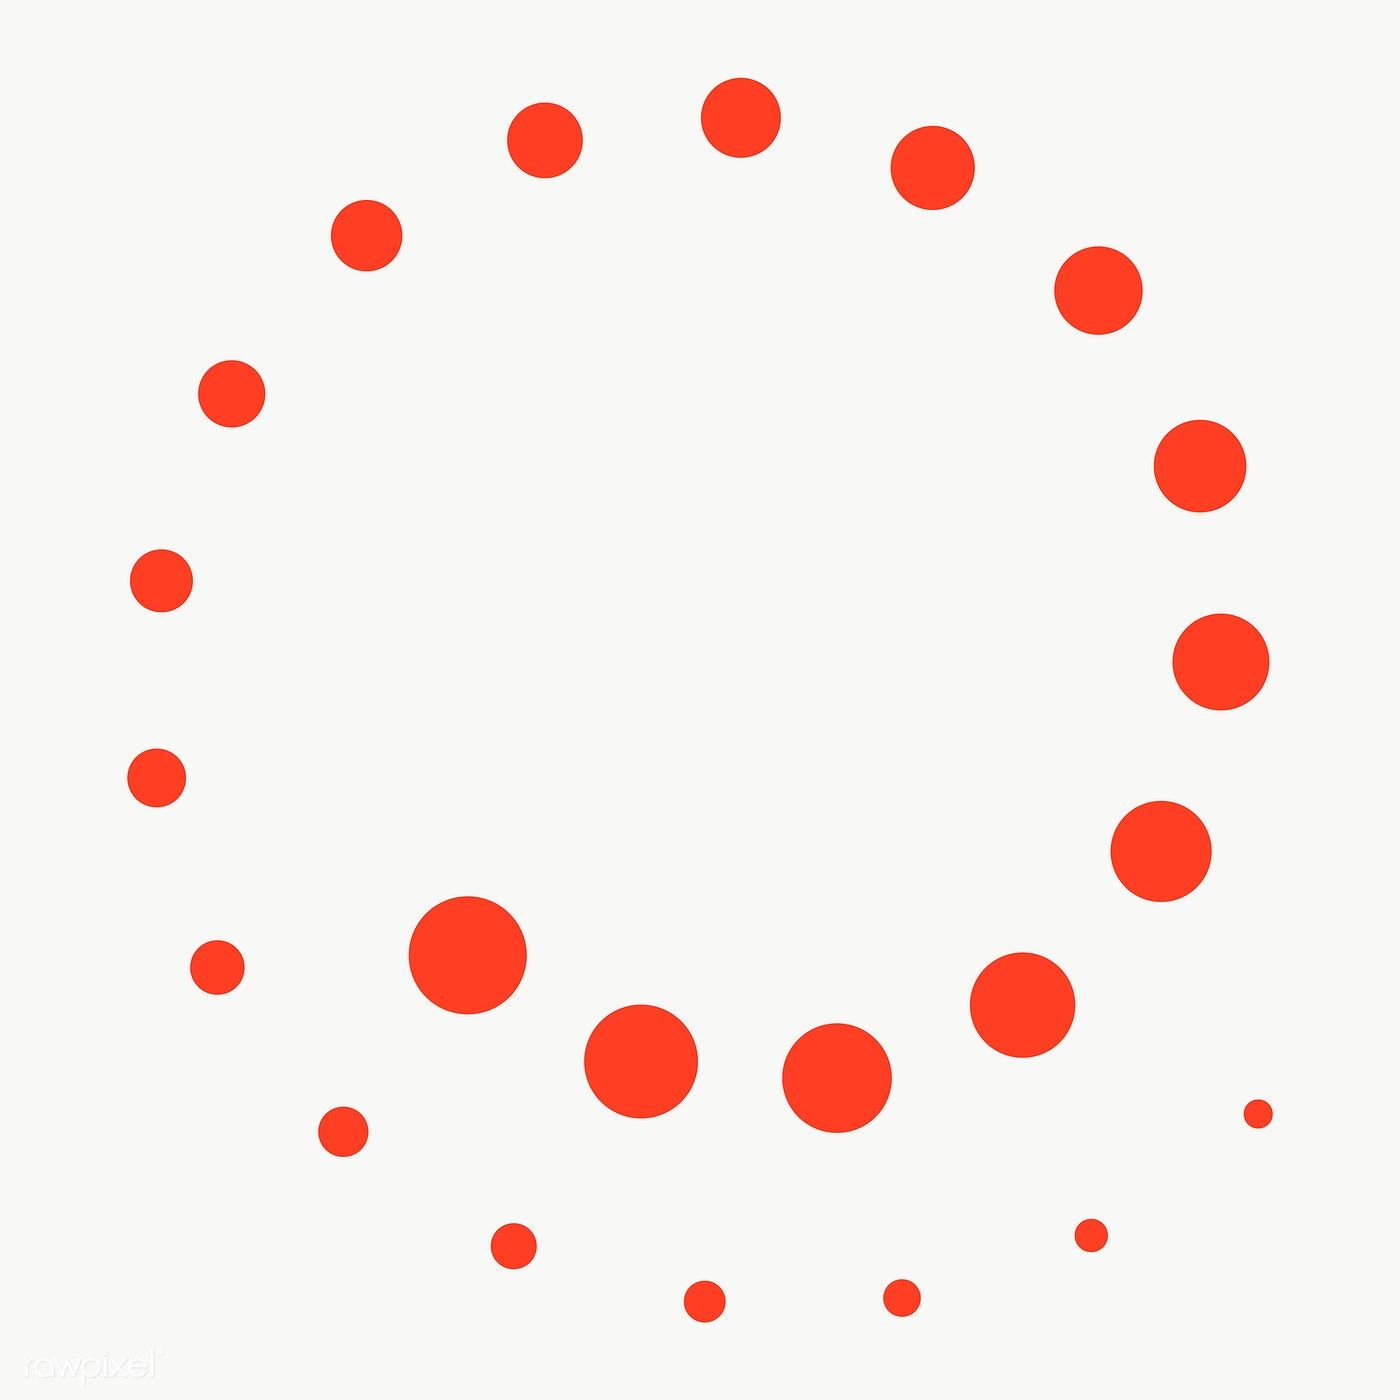 Download Premium Png Of Abstract Round Red Badge Transparent Png 2051798 Vector Background Pattern Abstract Web Design Resources